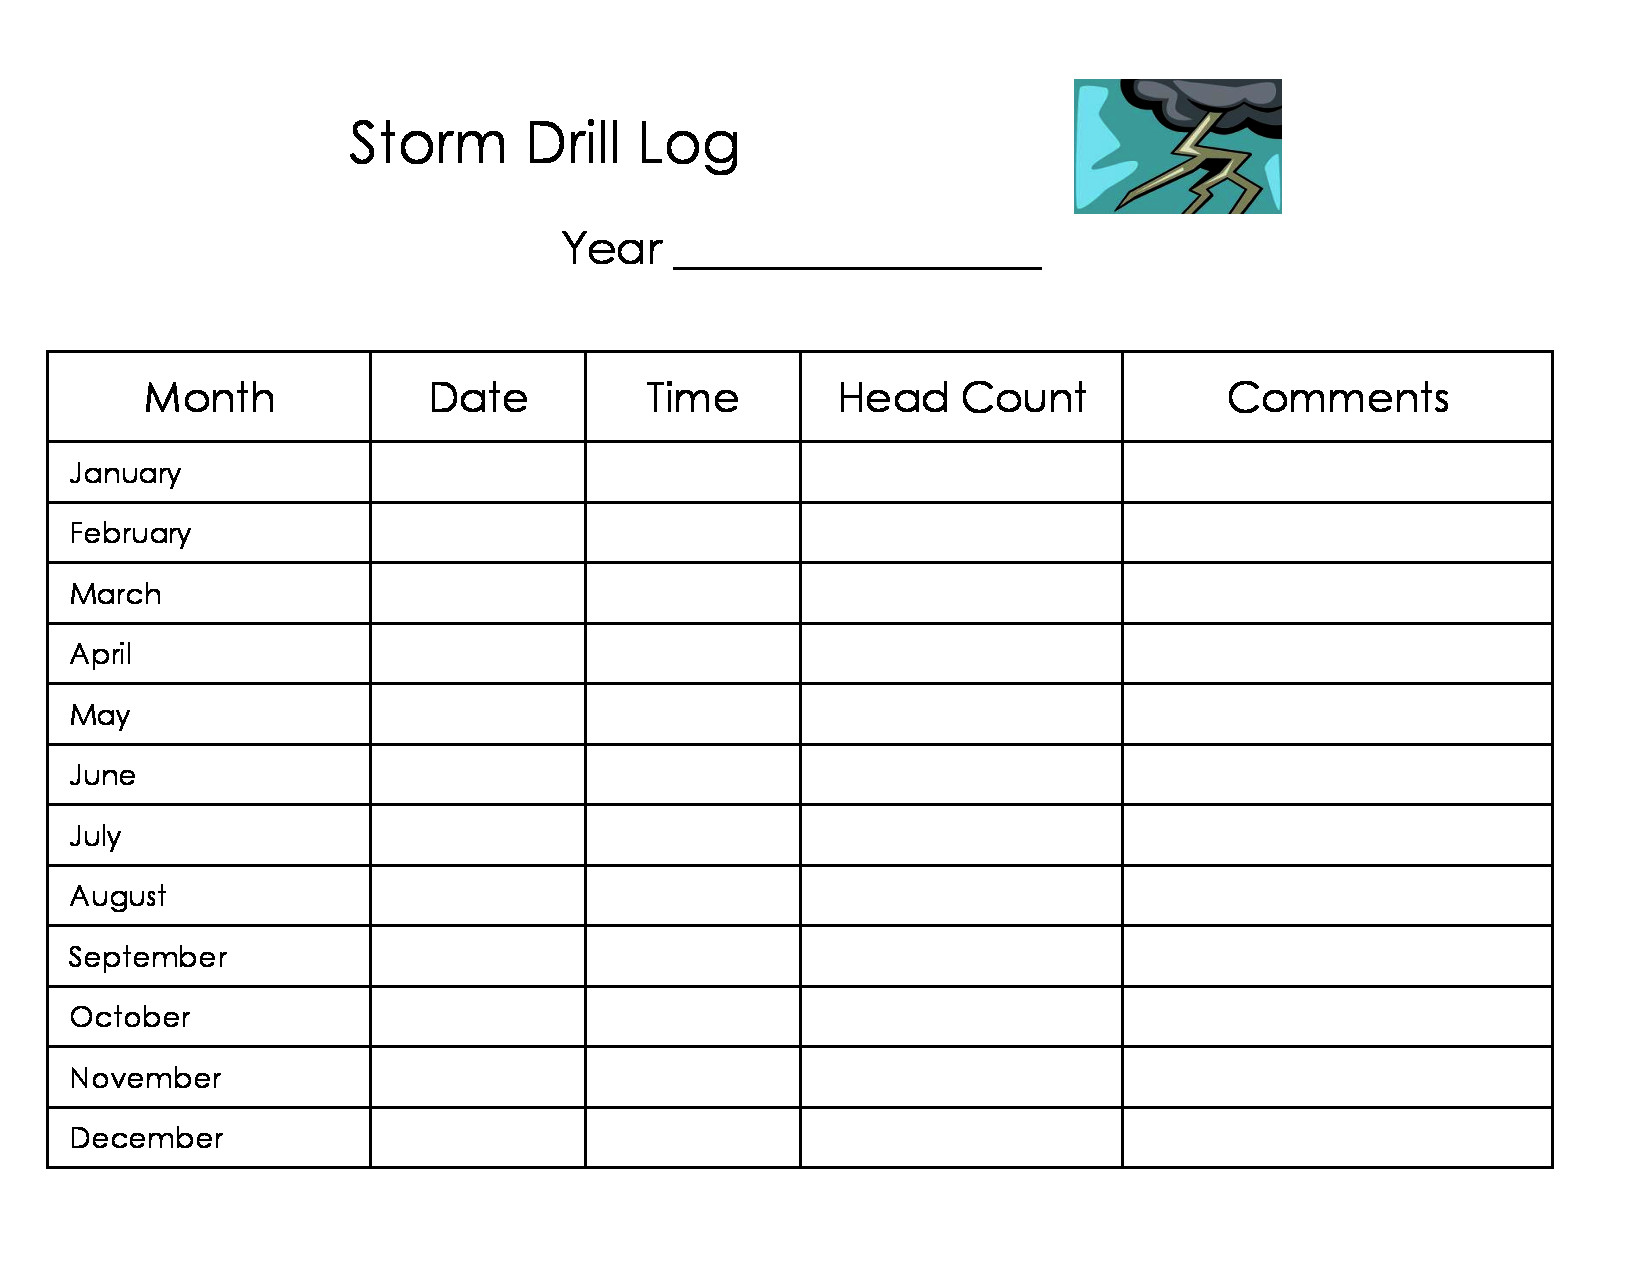 image regarding Home Daycare Forms Printable called Printable Dwelling Daycare Styles - Storm/Fireplace Drill Logs